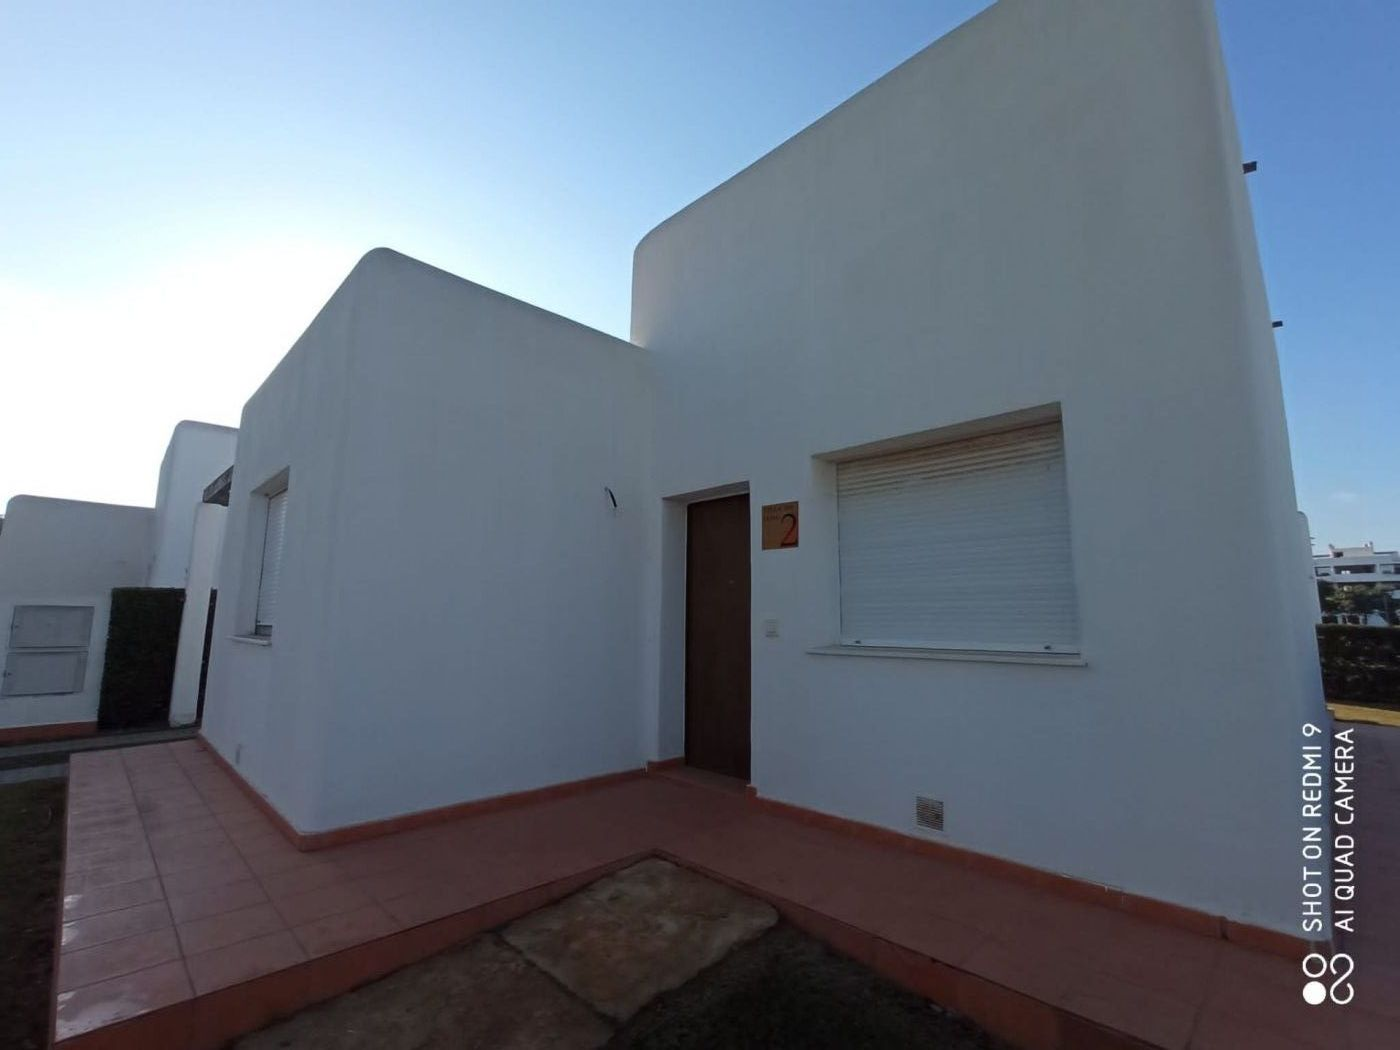 Image 4 Villa ref 3500 for sale in Condado De Alhama Spain - Quality Homes Costa Cálida